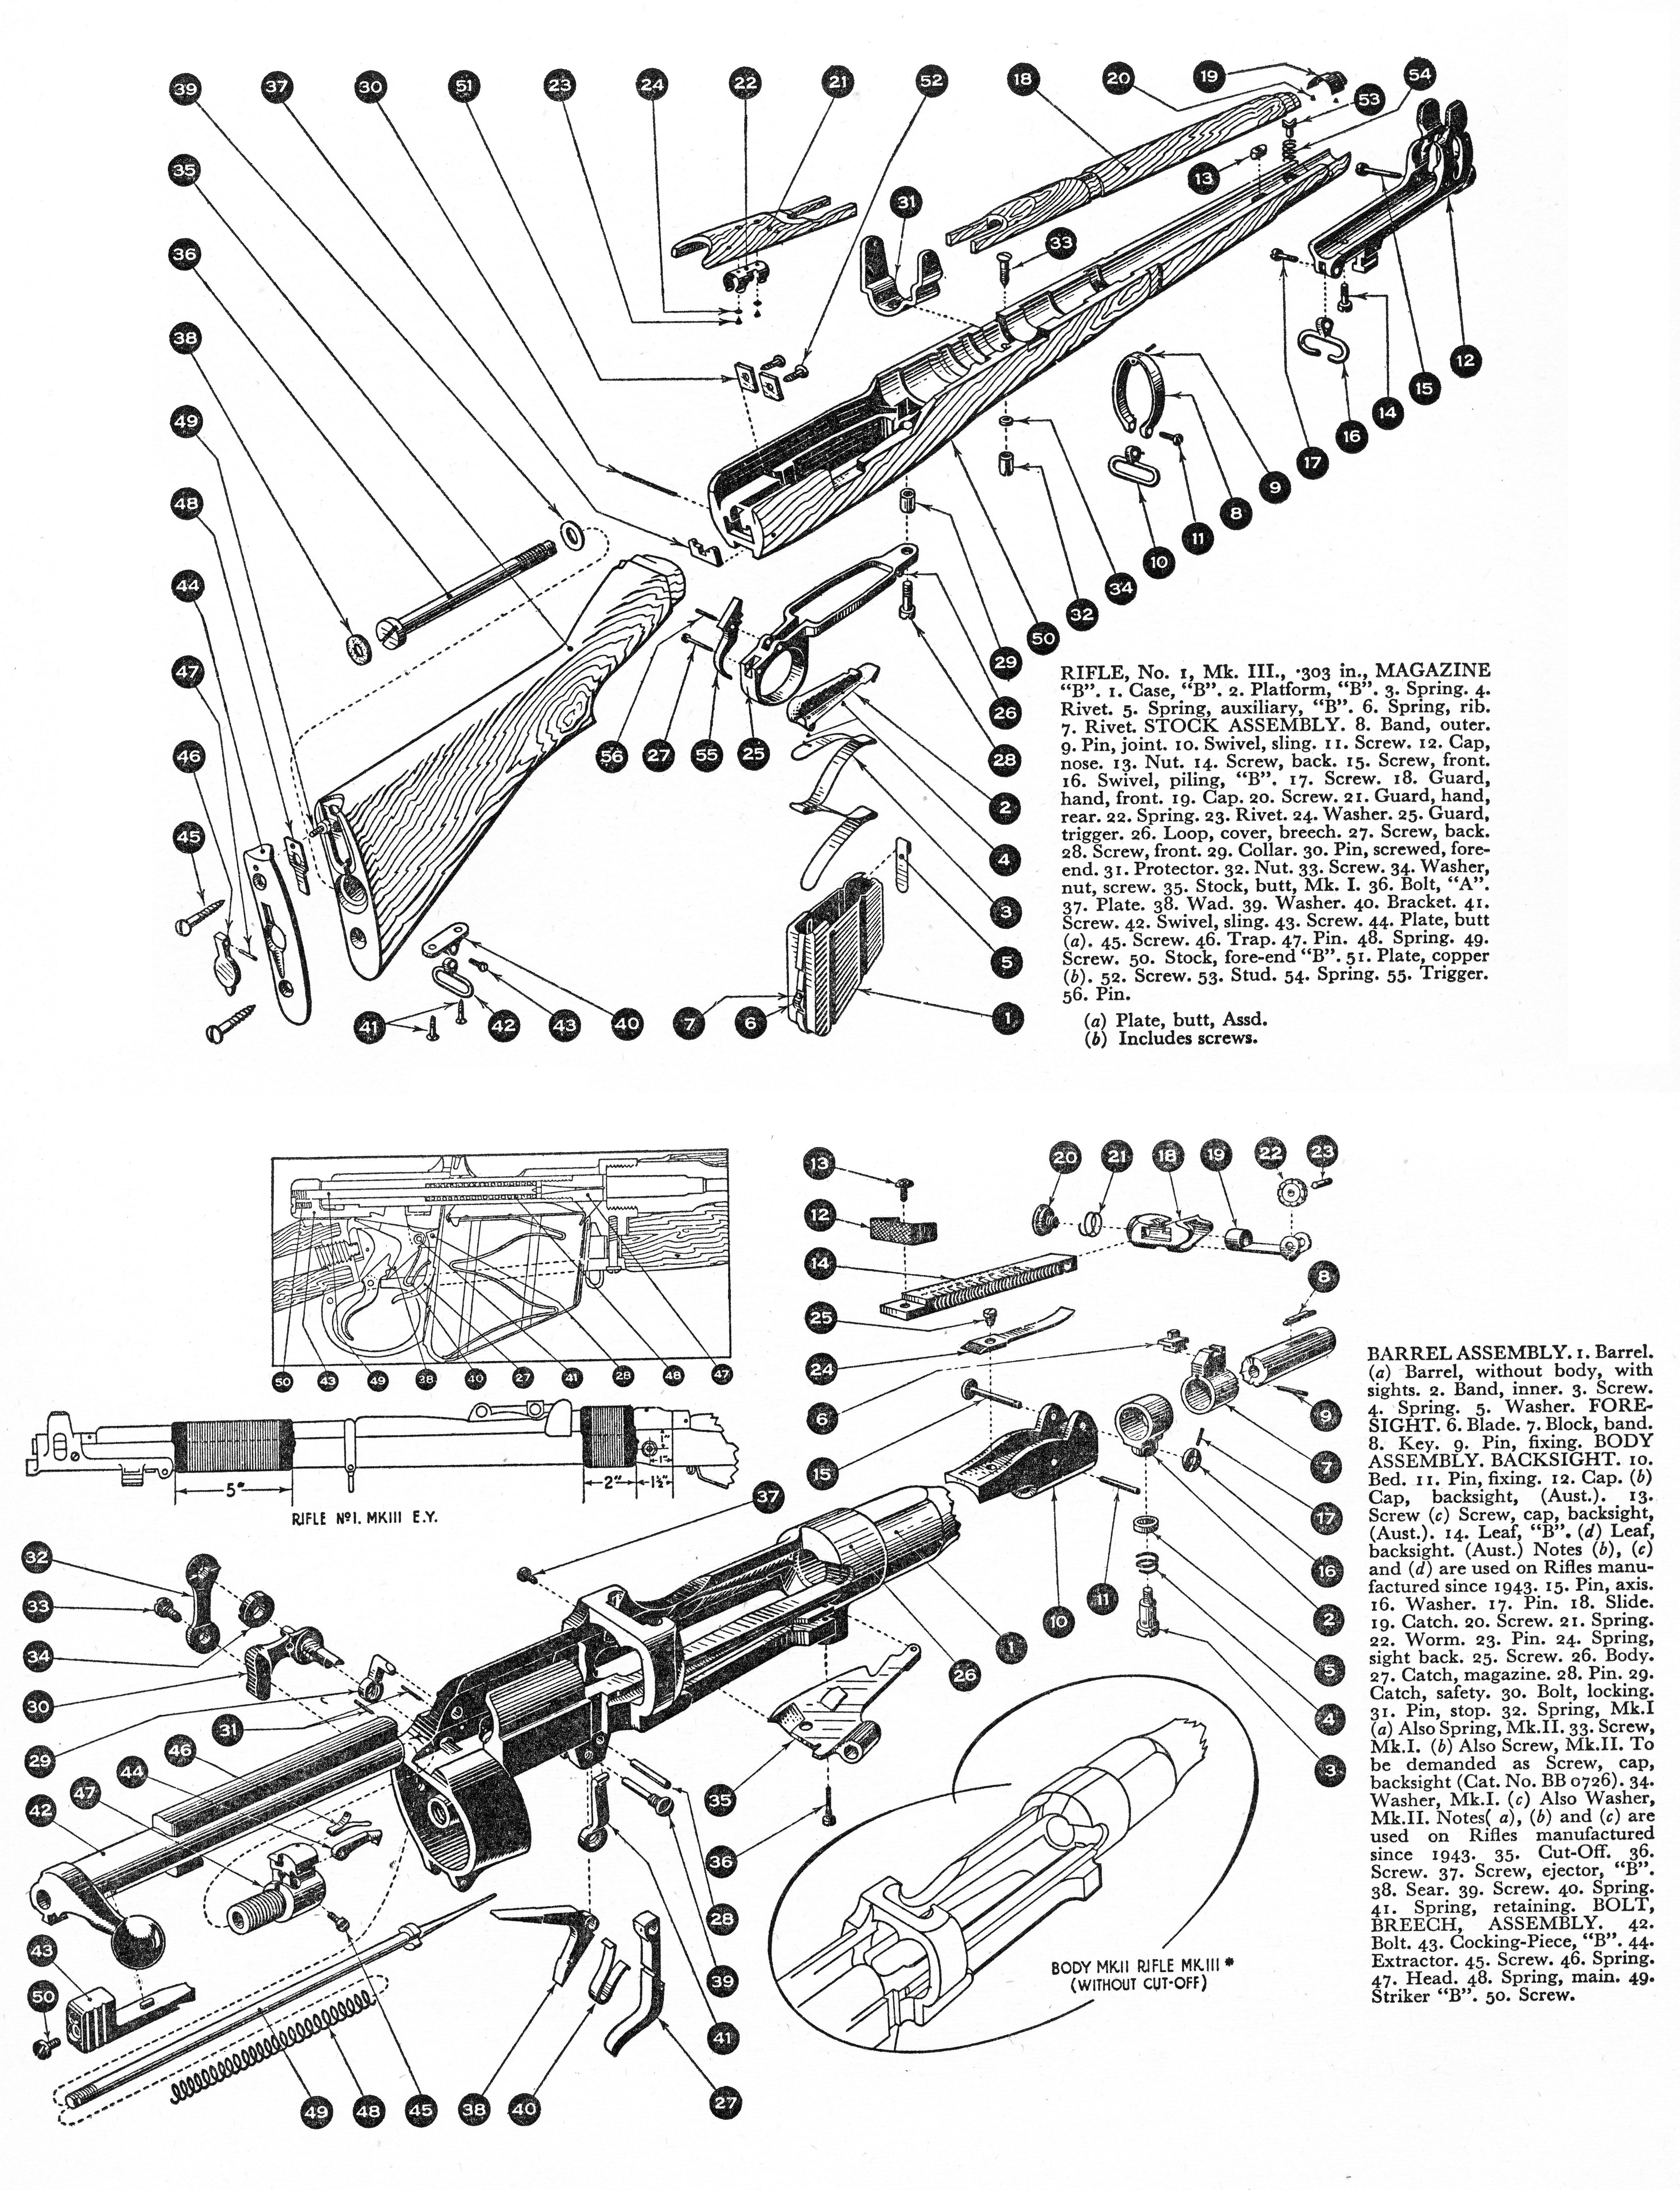 basic gun diagram 2016 ford f150 trailer plug wiring detailed parts of rifle no 1 mkiii smle 303in with cut off